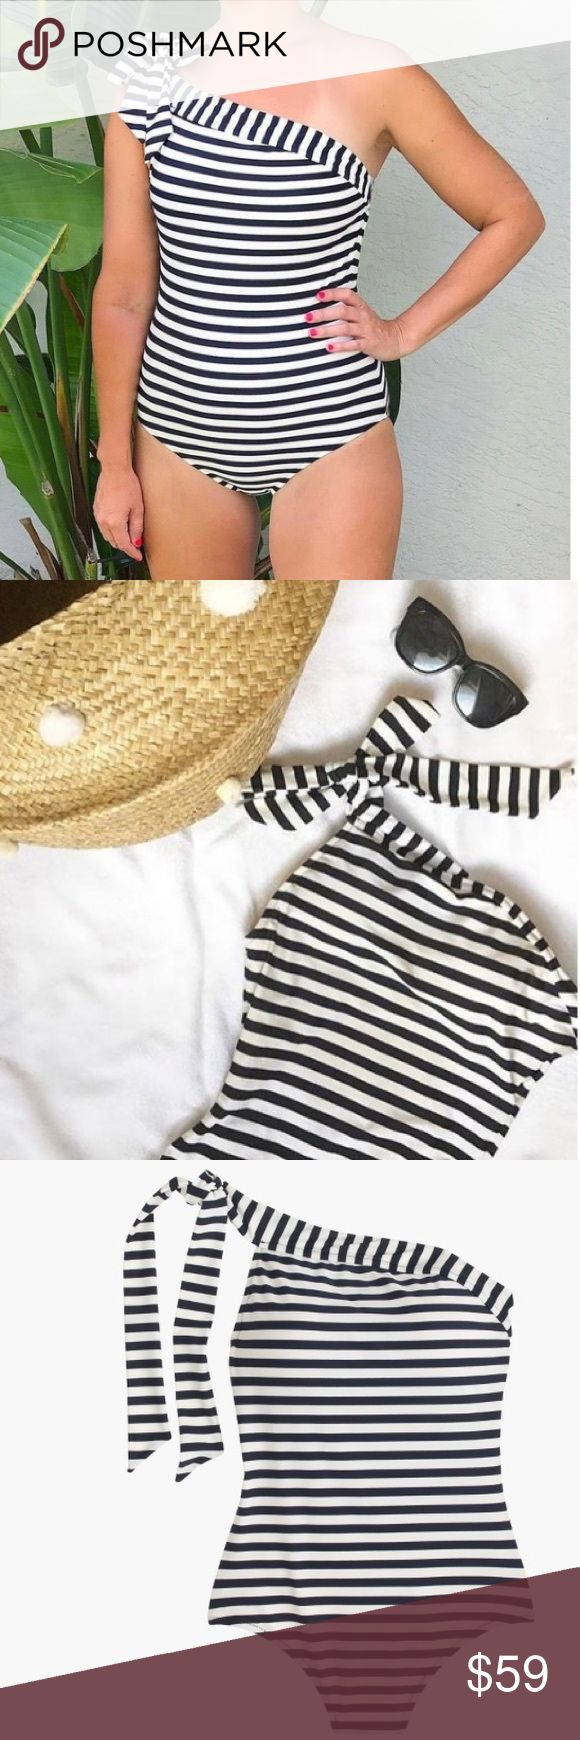 J. Crew One-shoulder one-piece swimsuit One-shoulder one-piece swimsuit in classic stripe. A timeless one-piece that ties at the shoulder will be your new go-to swimsuit.  Fully lined.  Shelf bra.  Size 14 Long Torso.     Excellent condition. J. Crew Swim One Pieces